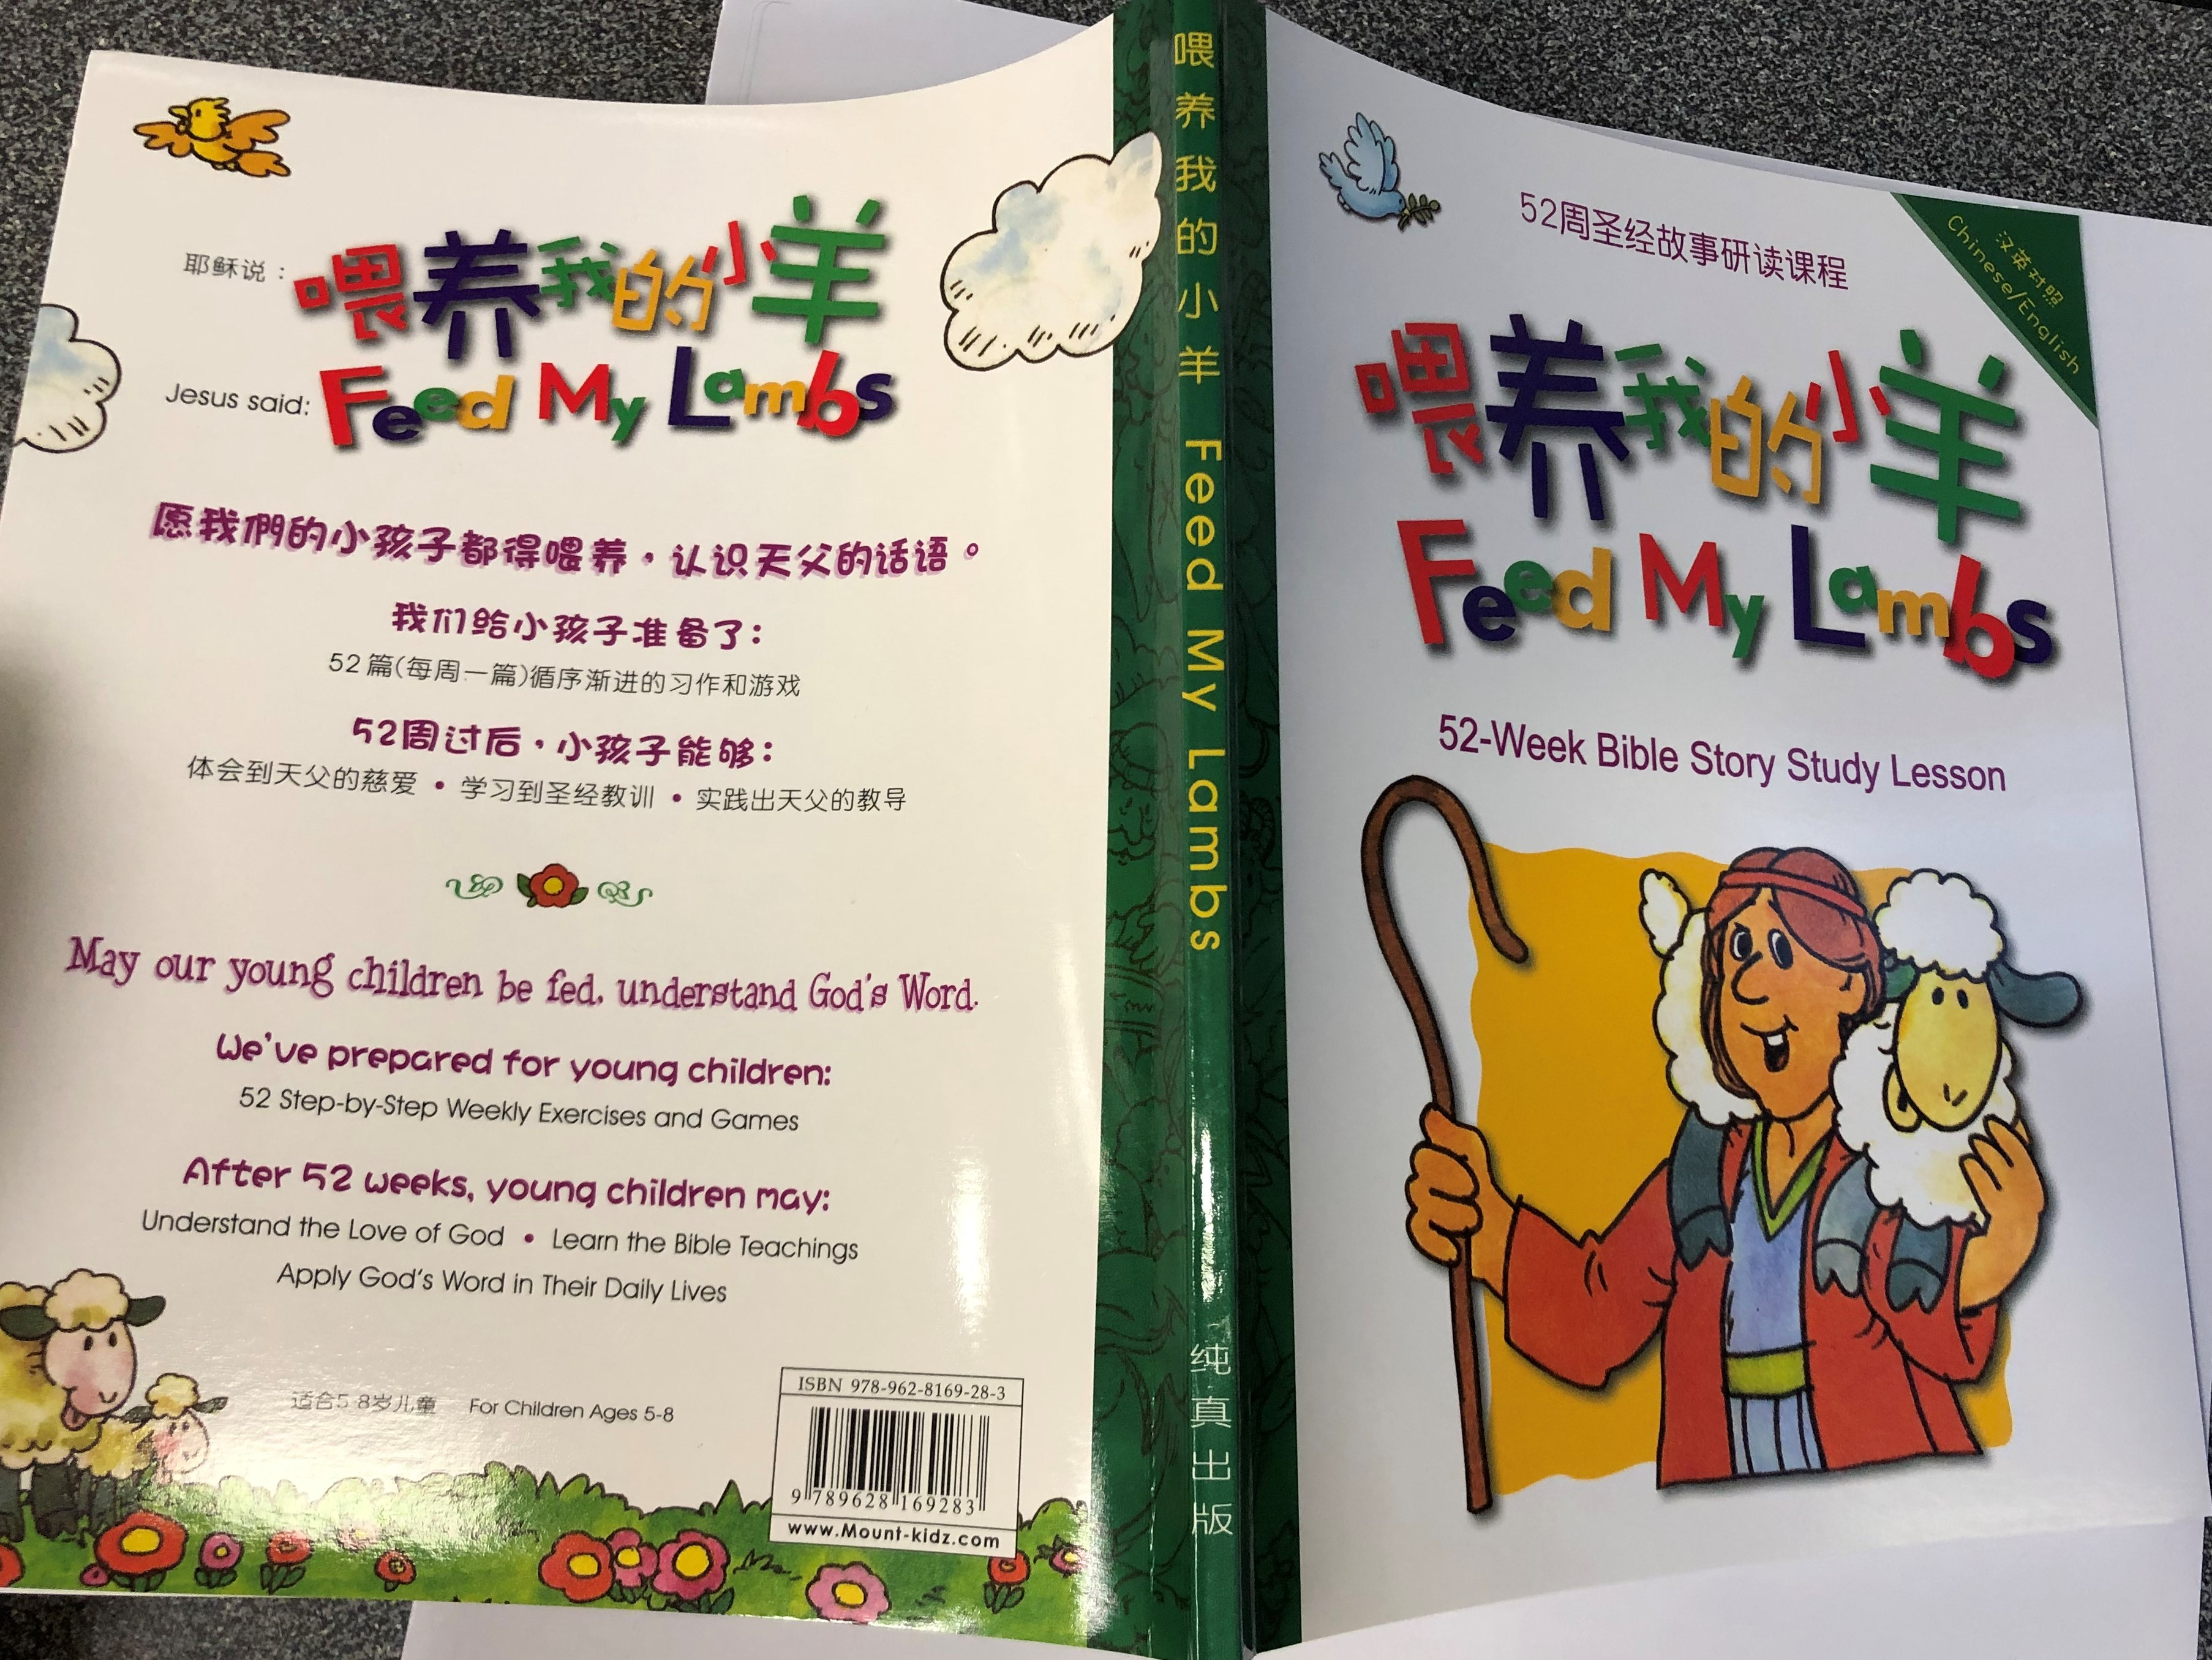 feed-my-lambs-52-week-study-lesson-for-children-chinese-english-15-.jpg